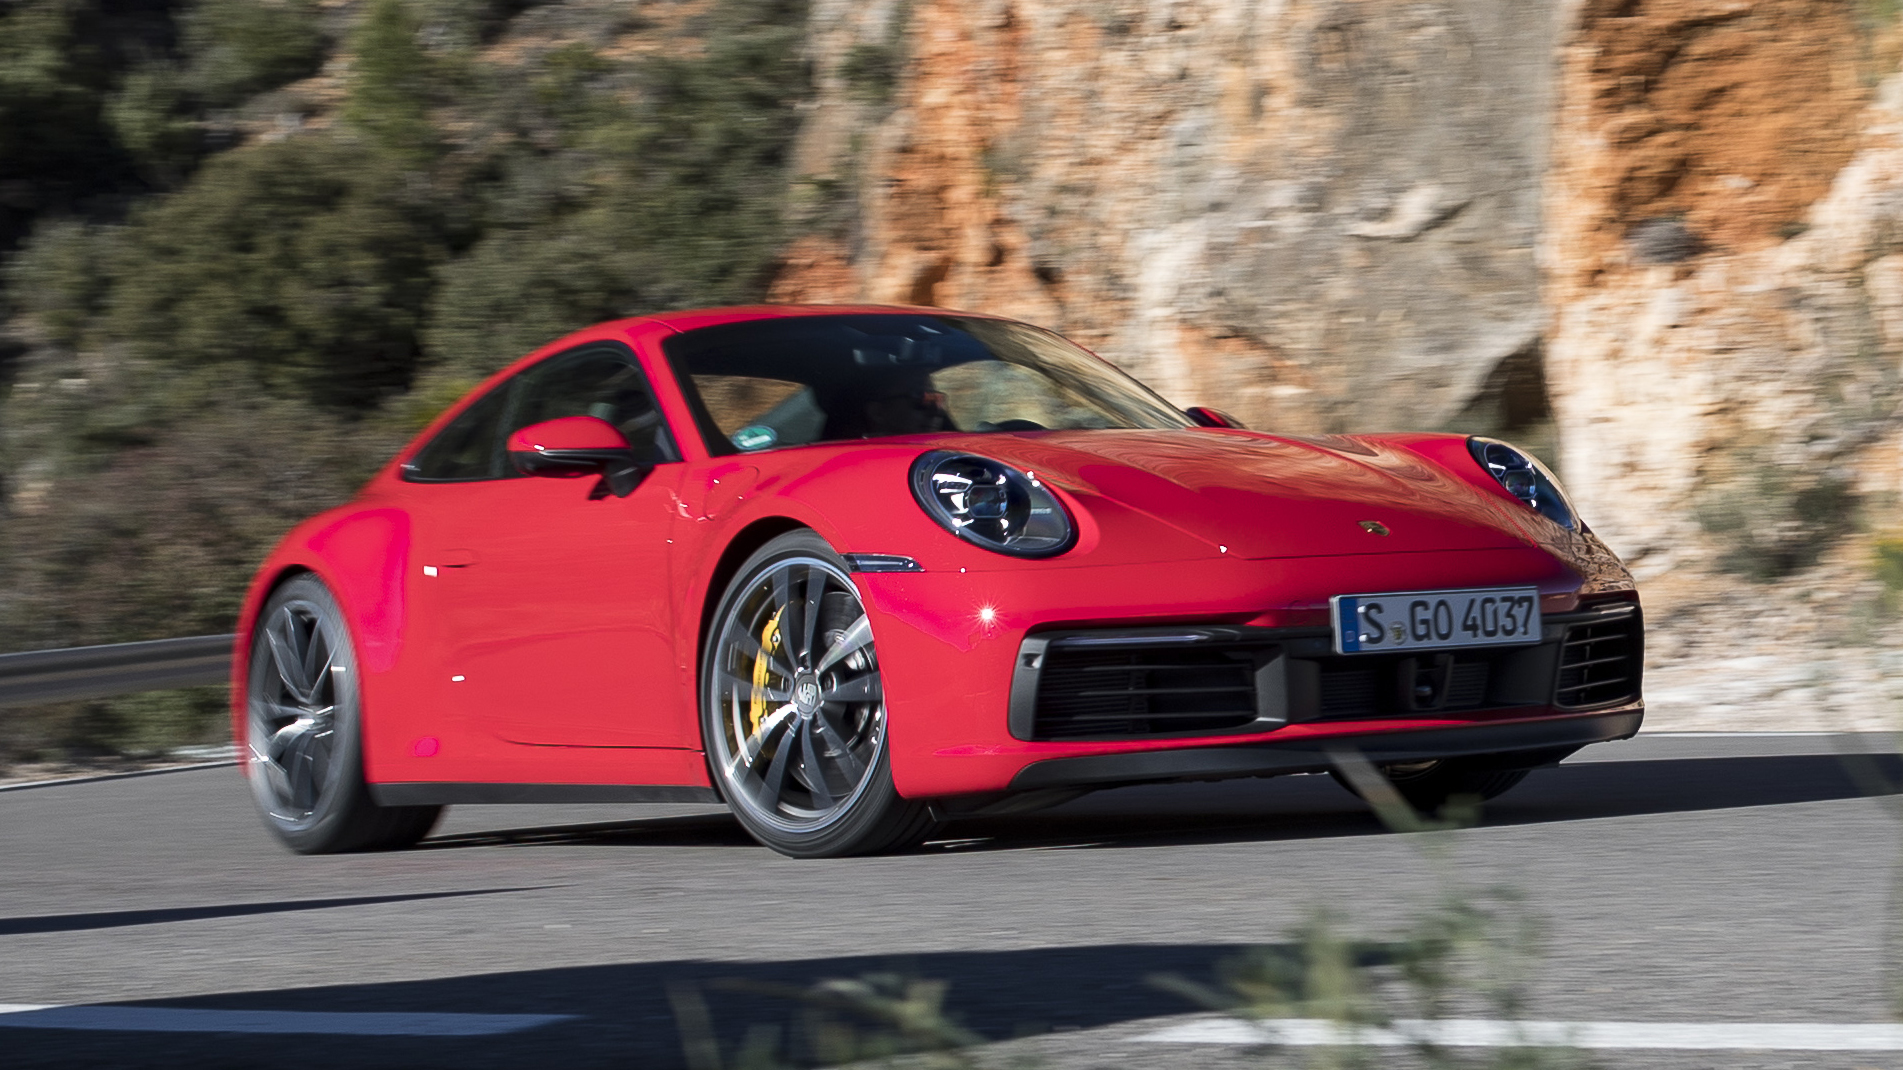 2020 Porsche 911 road and track test review | Autoblog